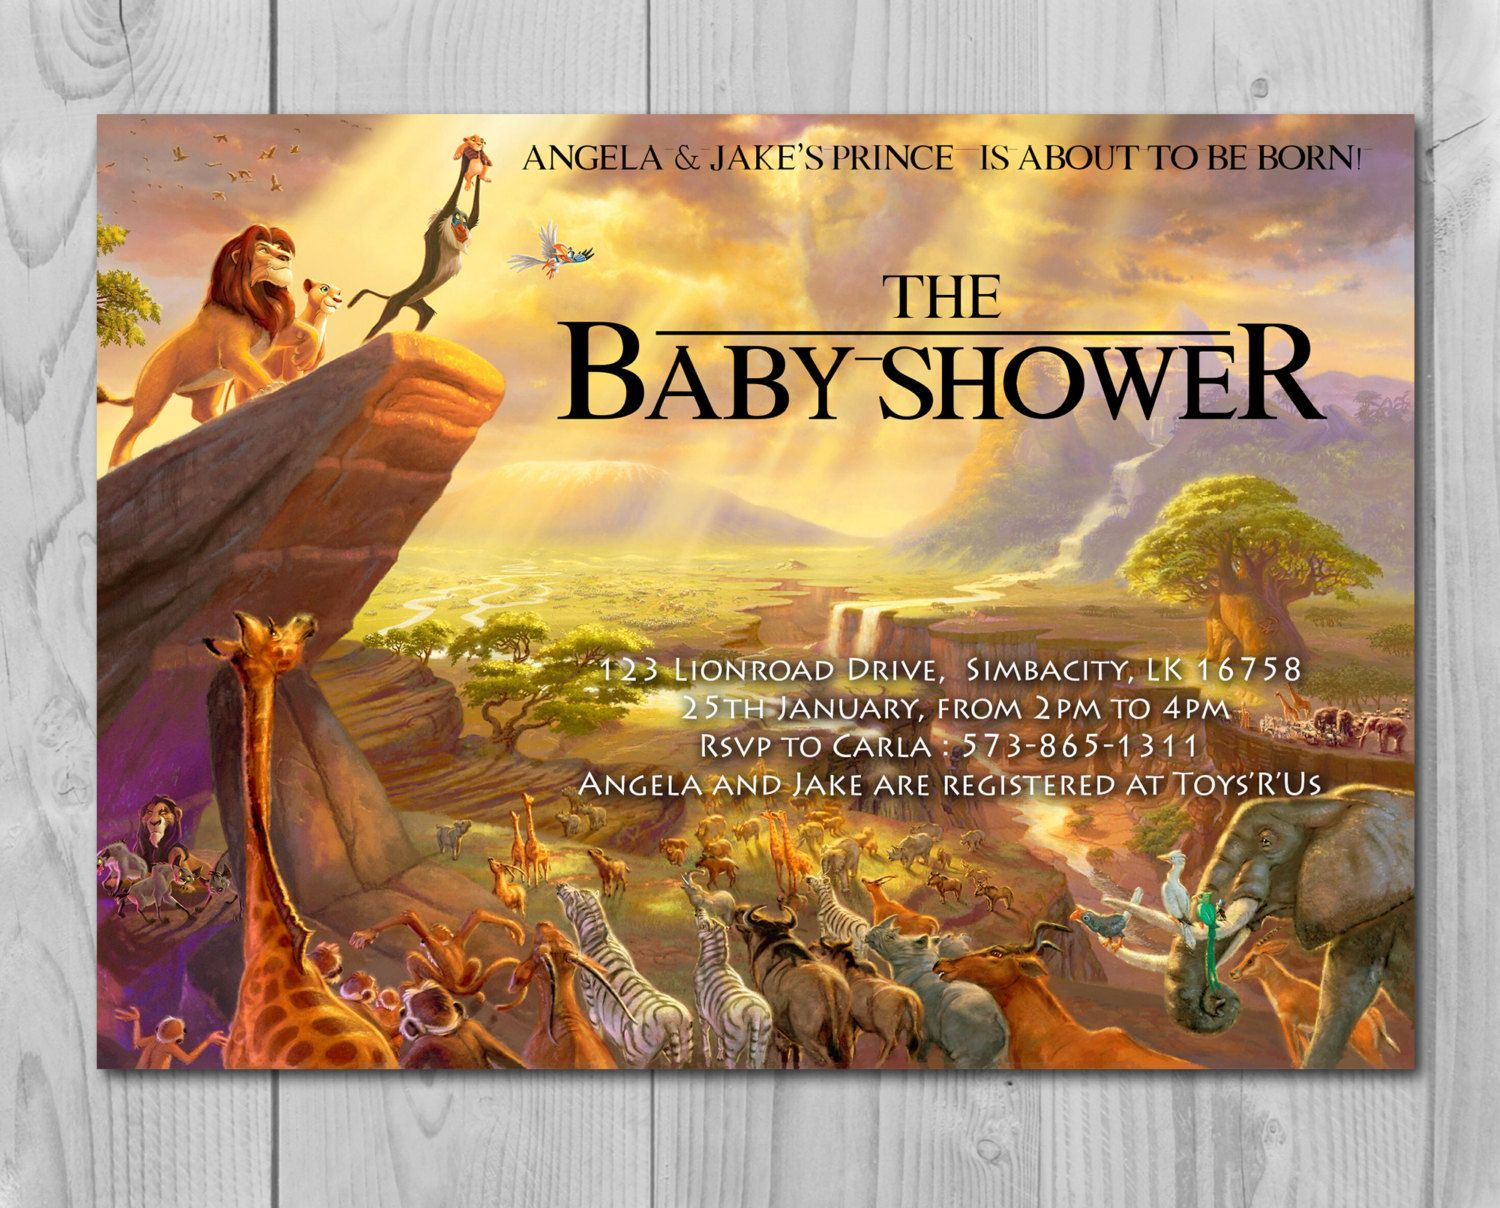 Lion king baby shower invitation jungle invitation disney invite lion king baby shower invitation jungle invitation disney invite lion invitation lion king simba rafiki by printadorable on etsy filmwisefo